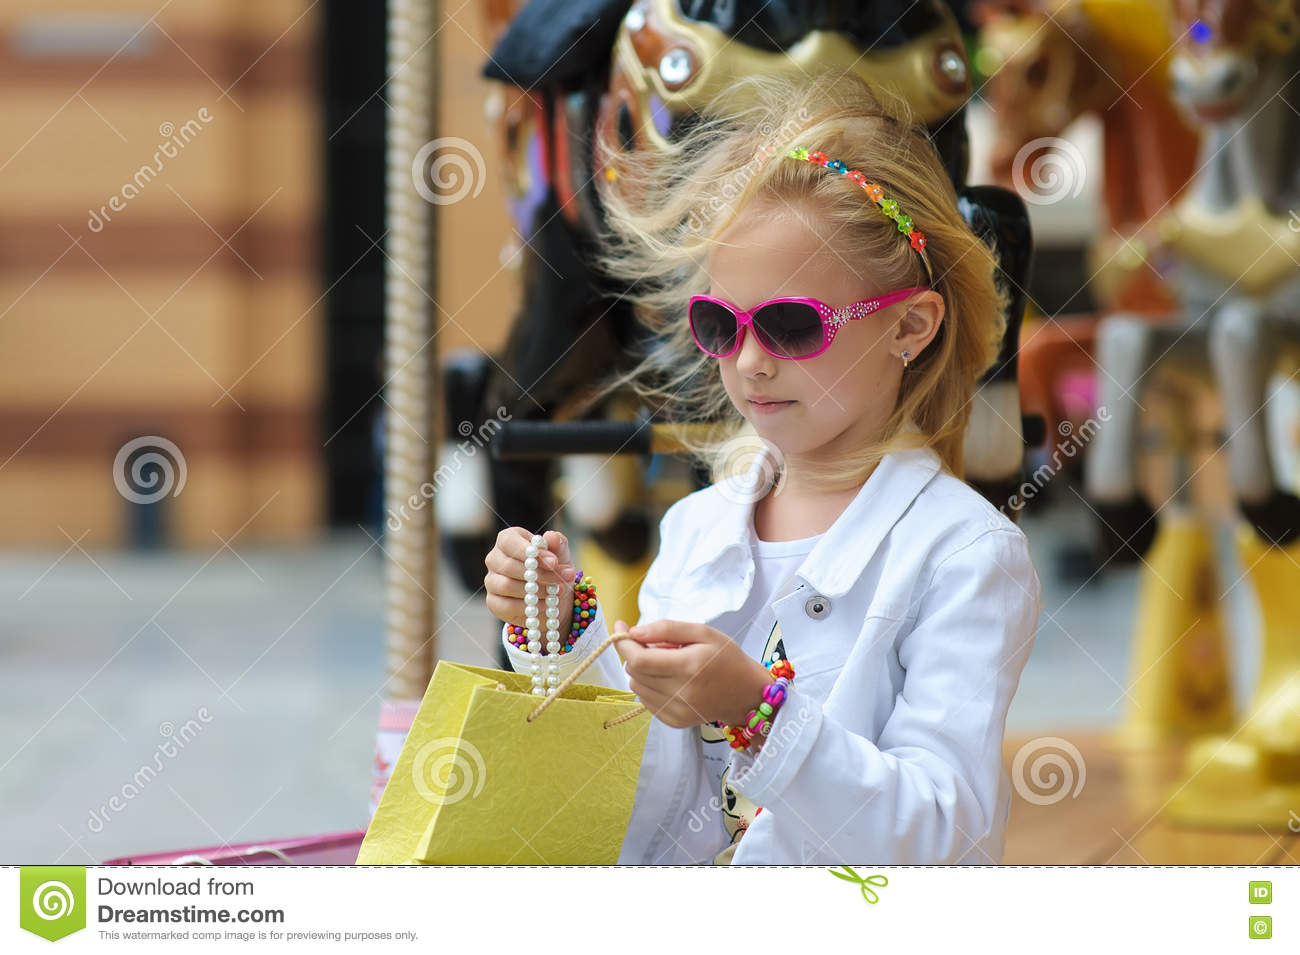 f0f262eb2 Child On Carousel With Full Shopping Bags. Stock Photo - Image of ...